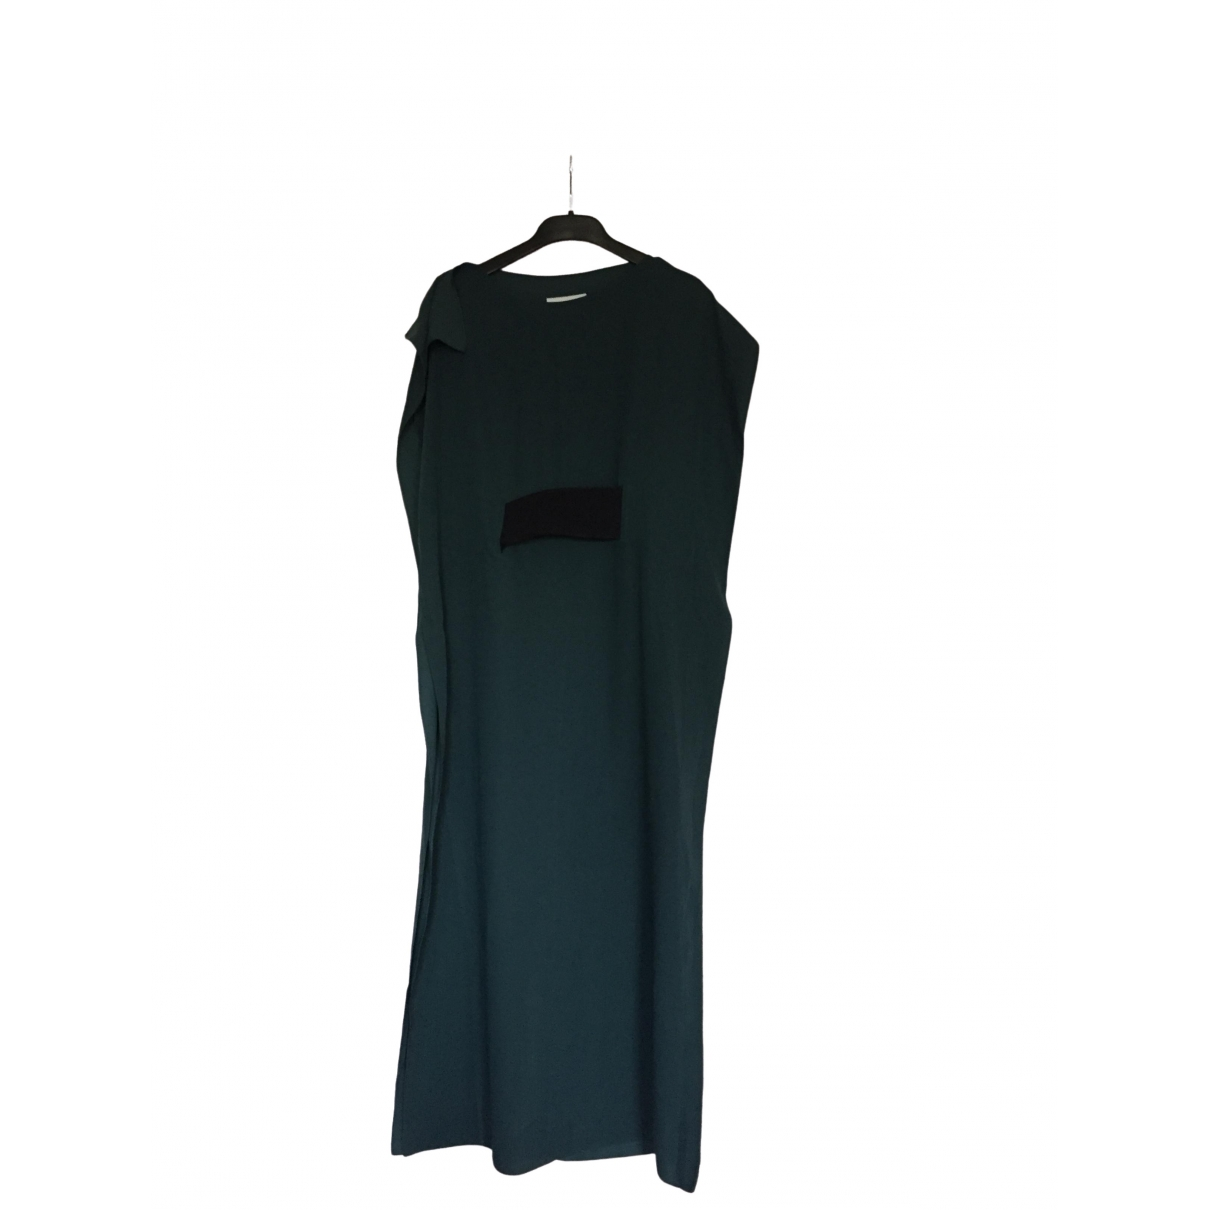 Mm6 \N Green dress for Women 38 FR